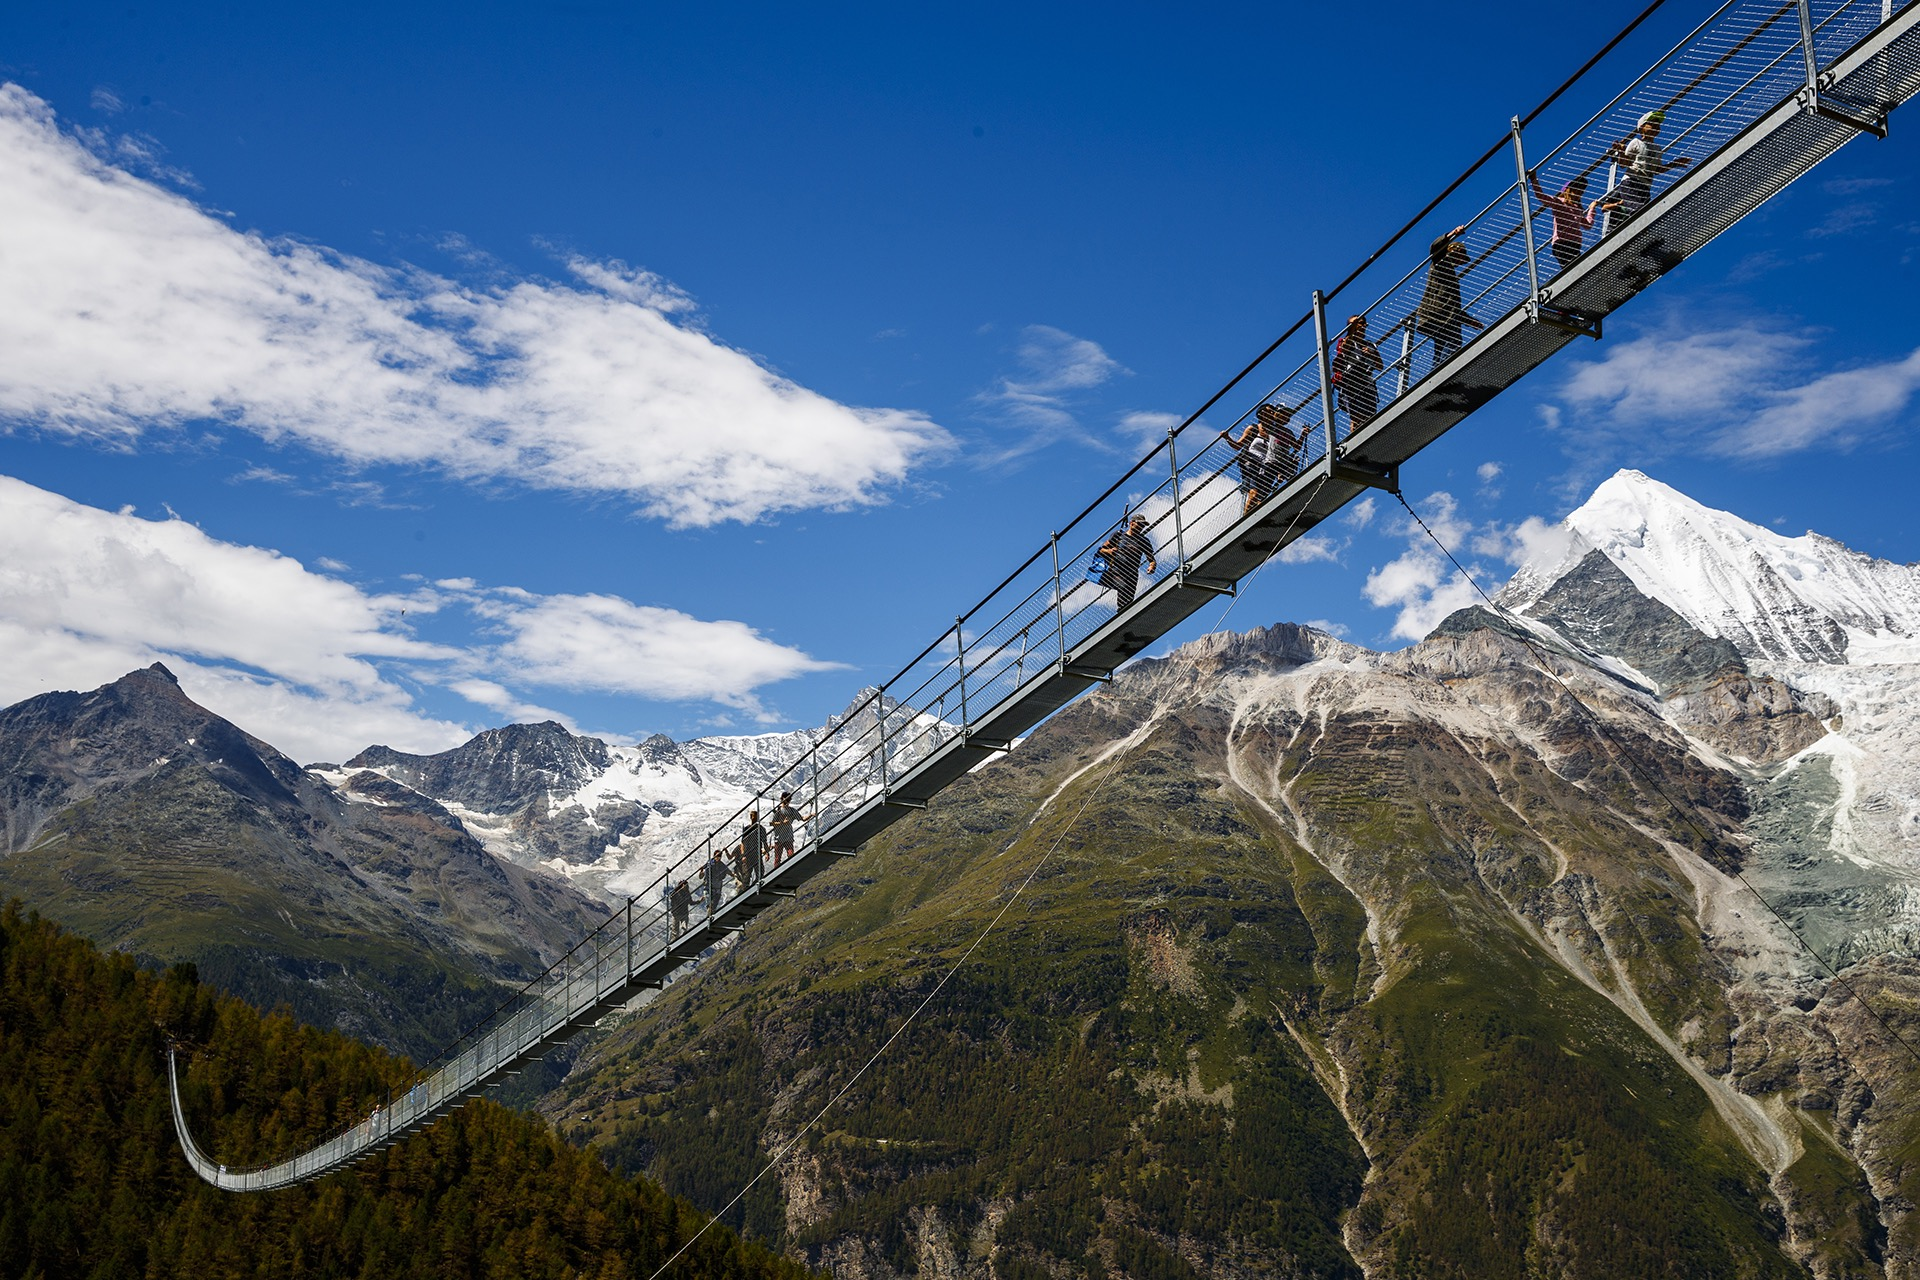 "People walk on the ""Europabruecke"", that is supposed to be the world's longest pedestrian suspension bridge with a length of 494m, after the official inauguration of the construction in Randa, Switzerland, on Saturday, July 29, 2017. The bridge is situated on the Europaweg that connects the villages of Zermatt and Graechen. (Valentin Flauraud/Keystone via AP)"